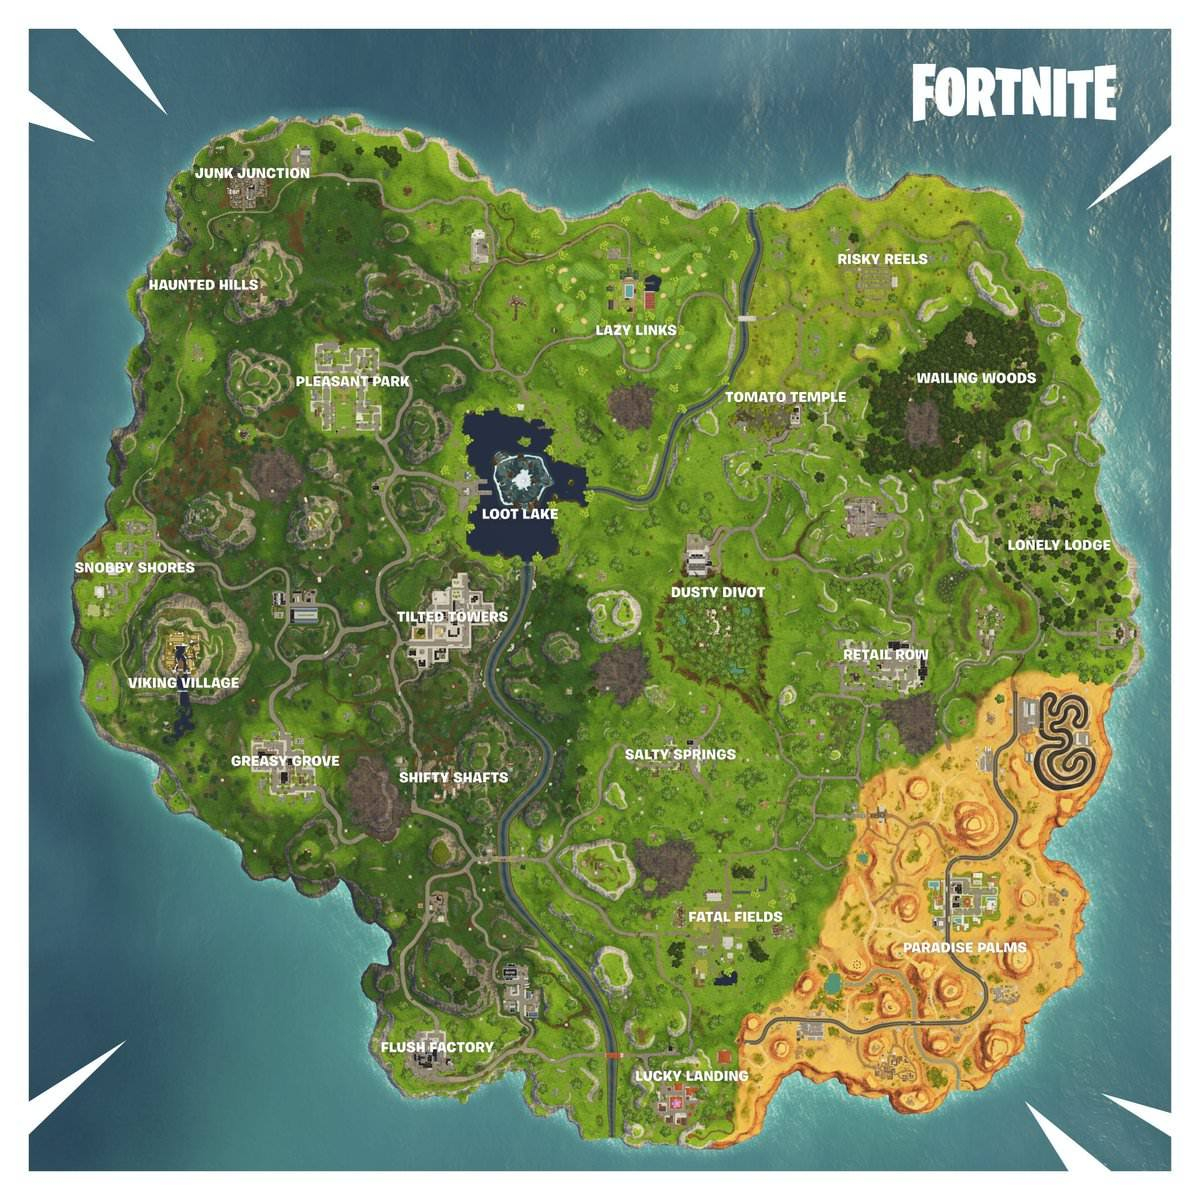 New Map Changes In Fortnite Season 6 - Fortnite Wiki Guide - Ign - Printable Fortnite Map